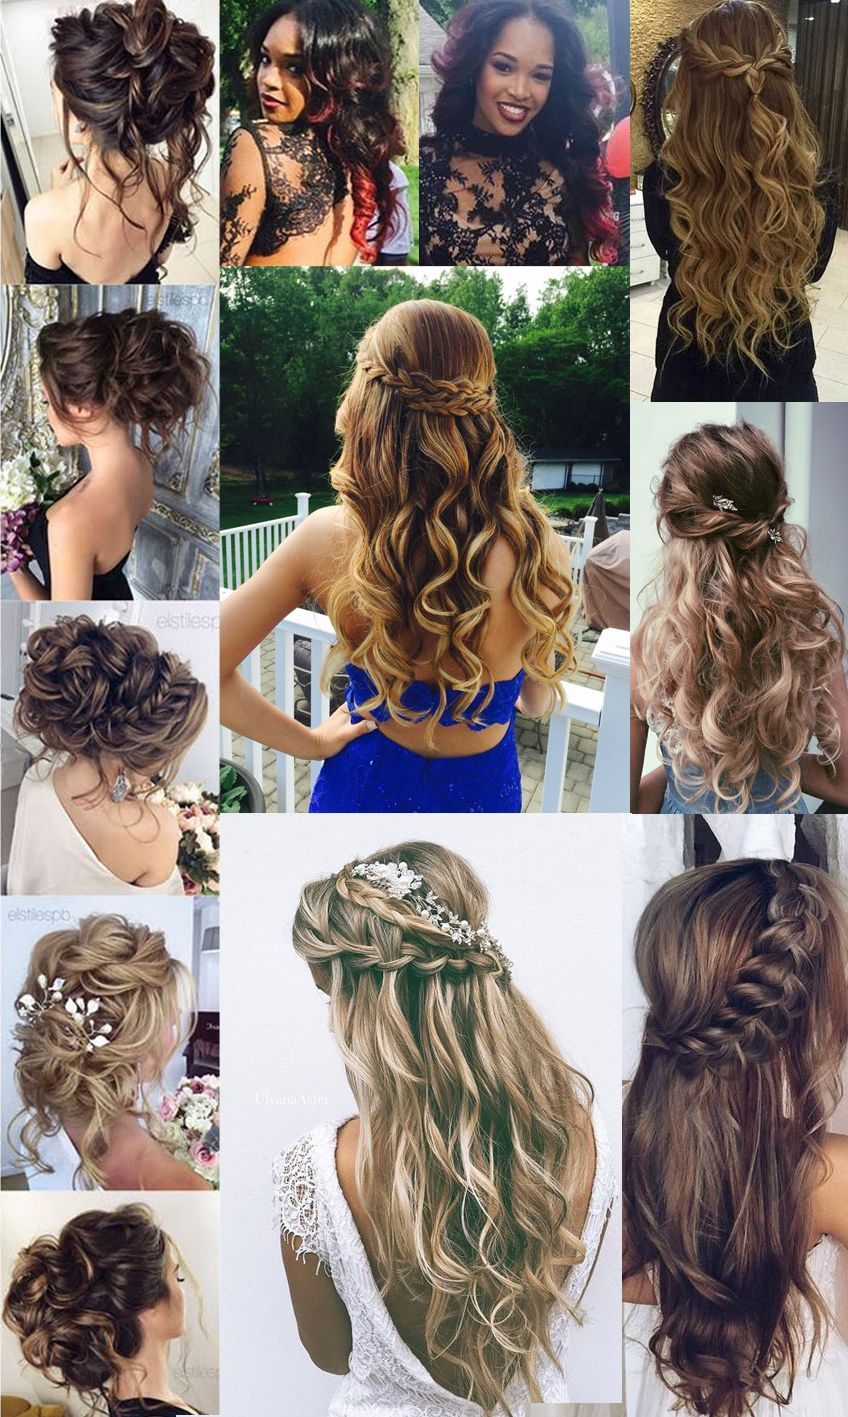 Prom Hair For Party Hairstyle Prom For Long Hair Hairstyle For Prom Black Prom Dress Party Hairstyles For Long Hair Hairstyles For Long Dresses Hair Styles